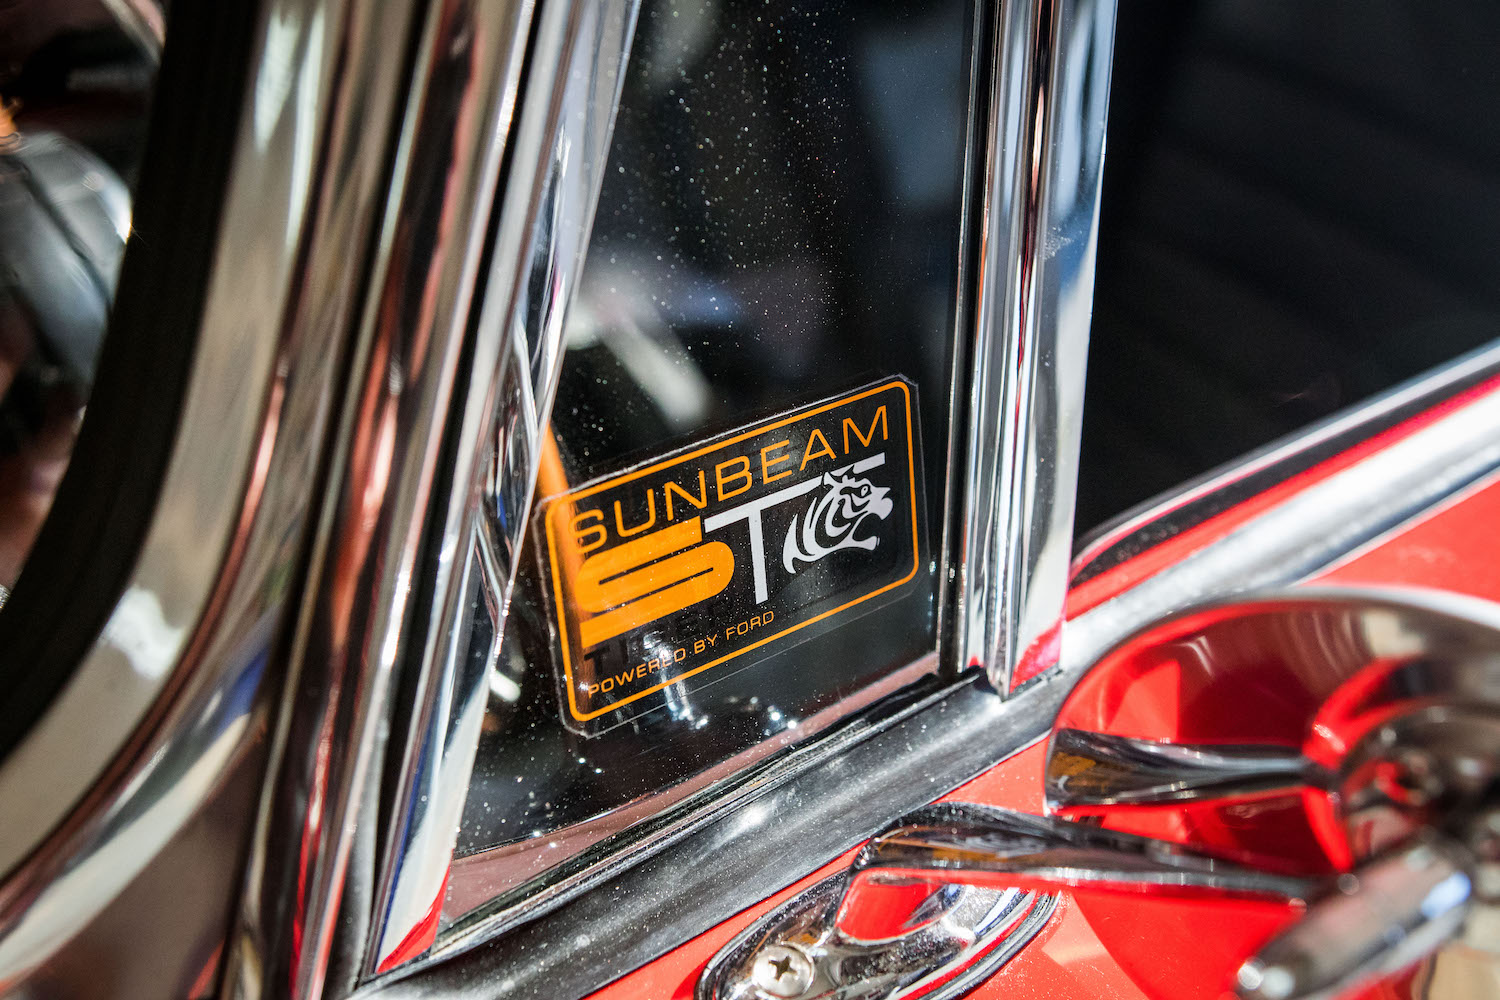 red sunbeam tiger glass detail